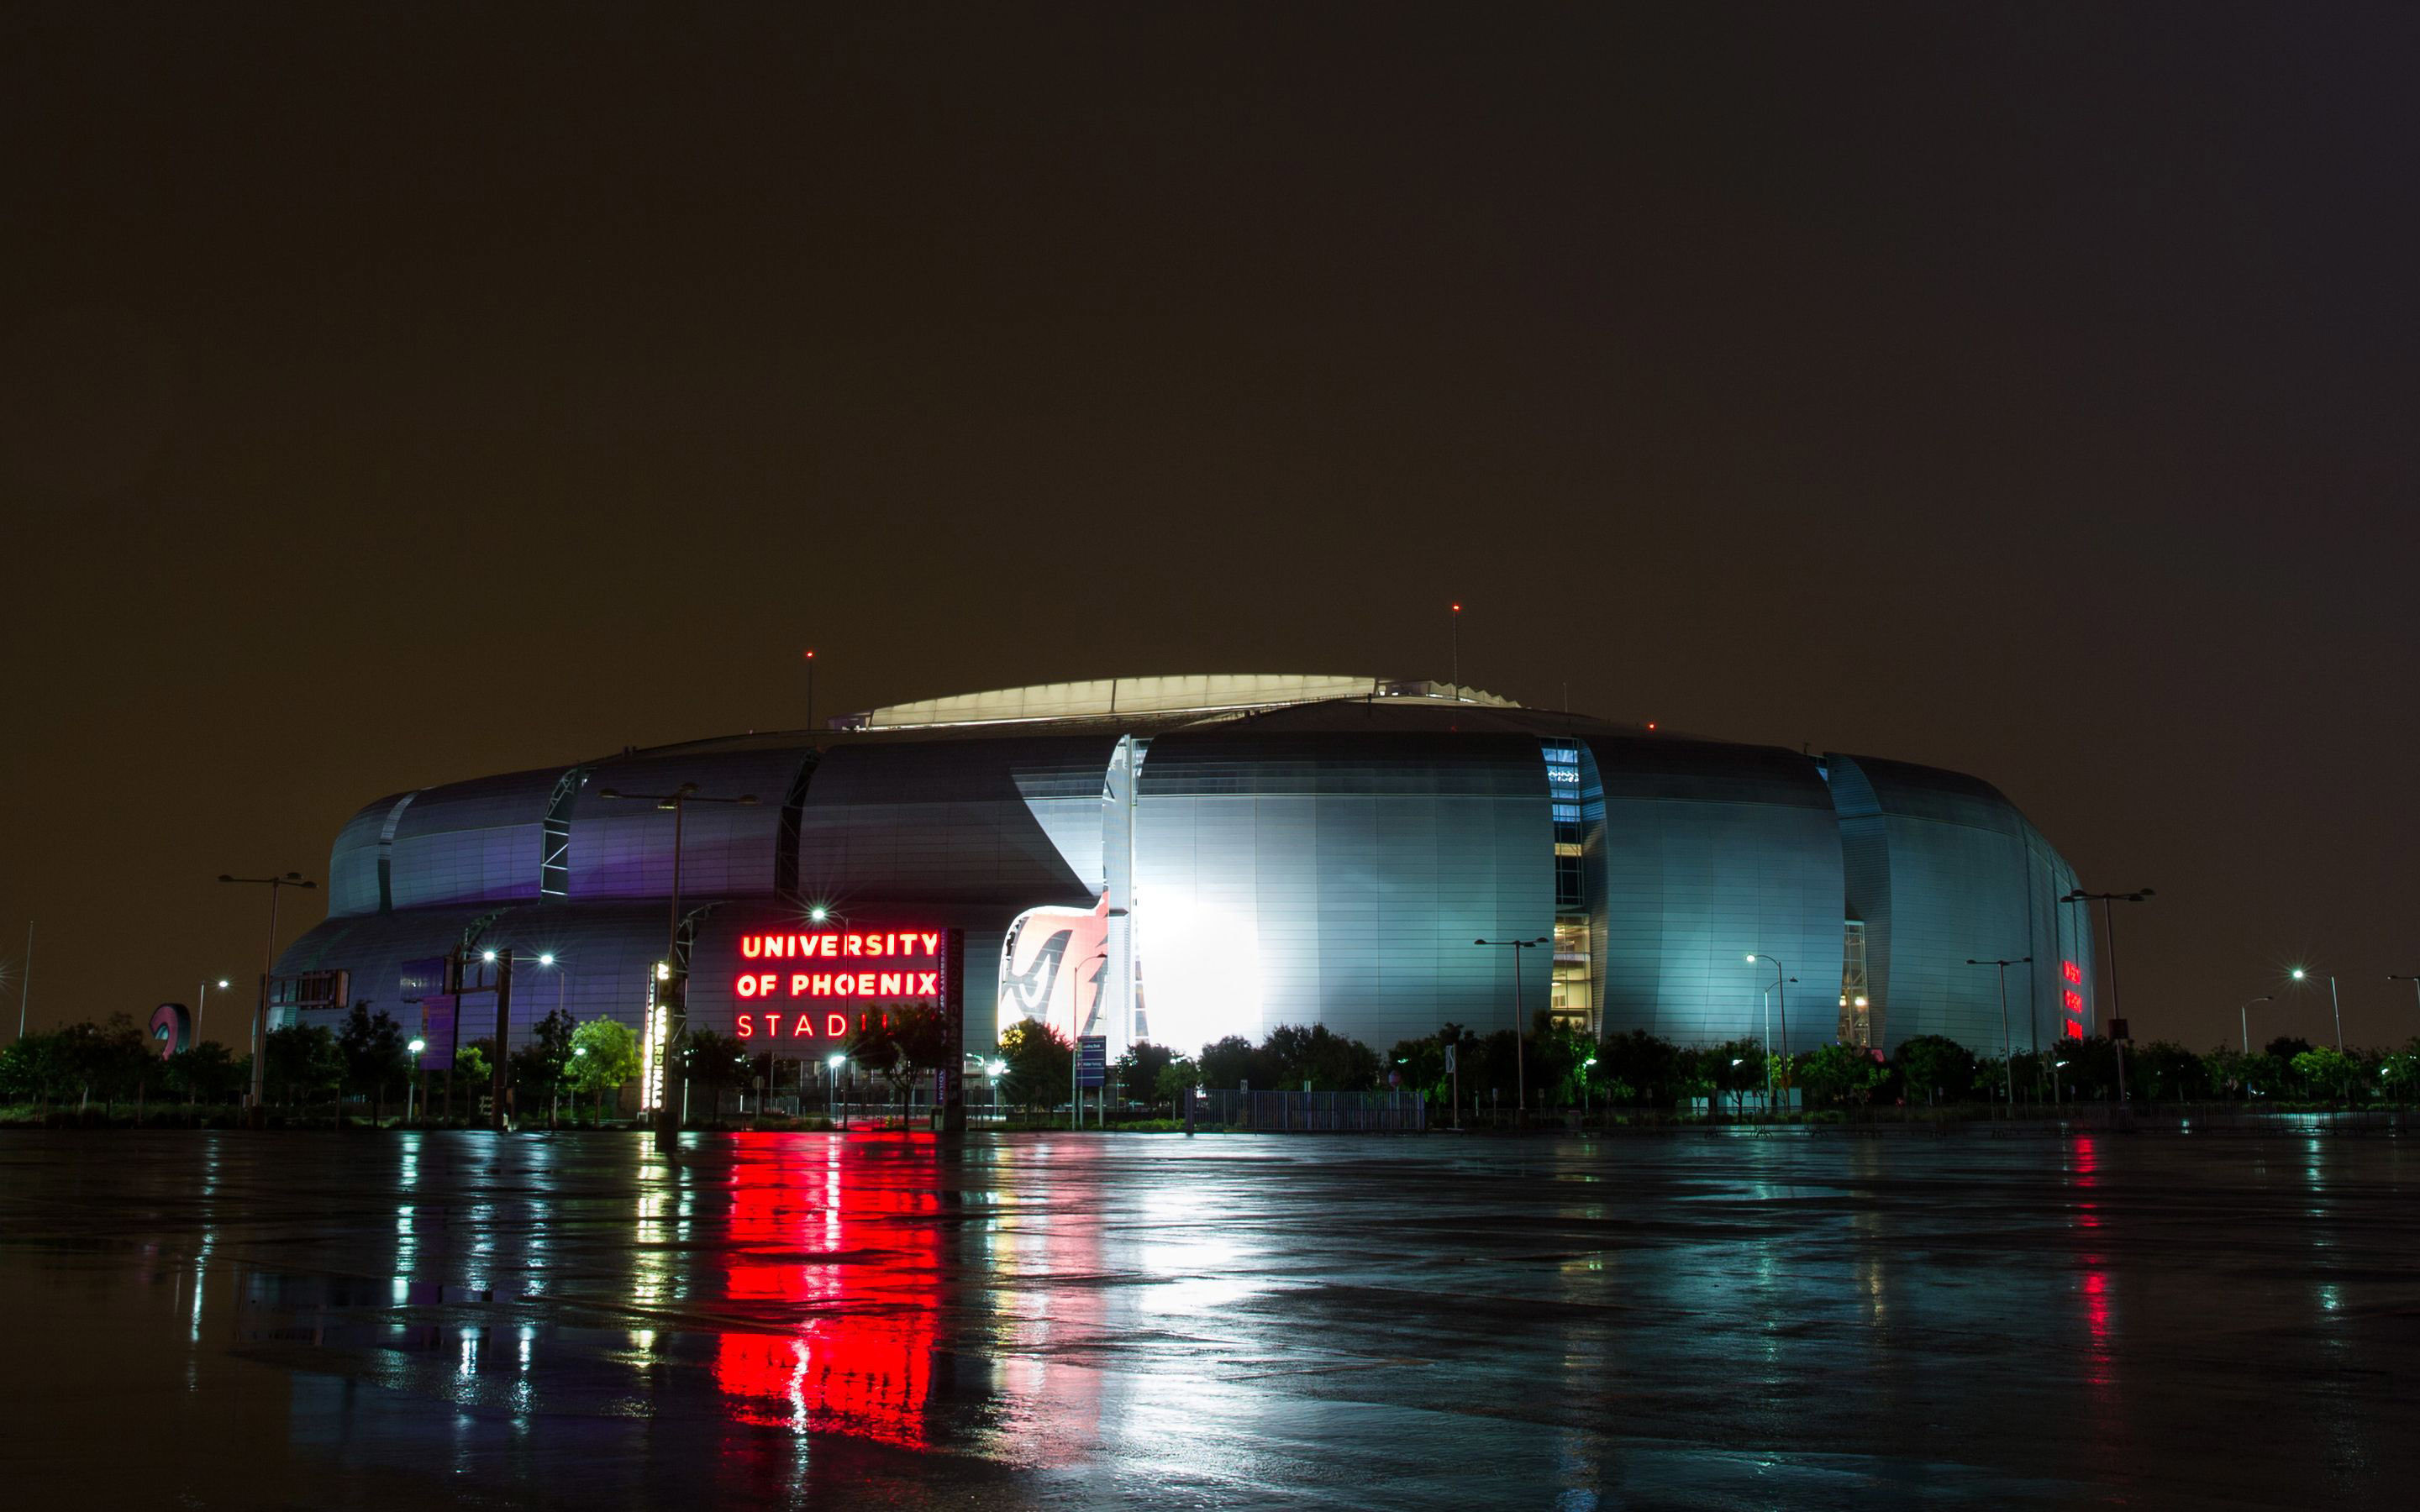 2880x1800 University of Phoenix Stadium Arizona Place Wallpaper